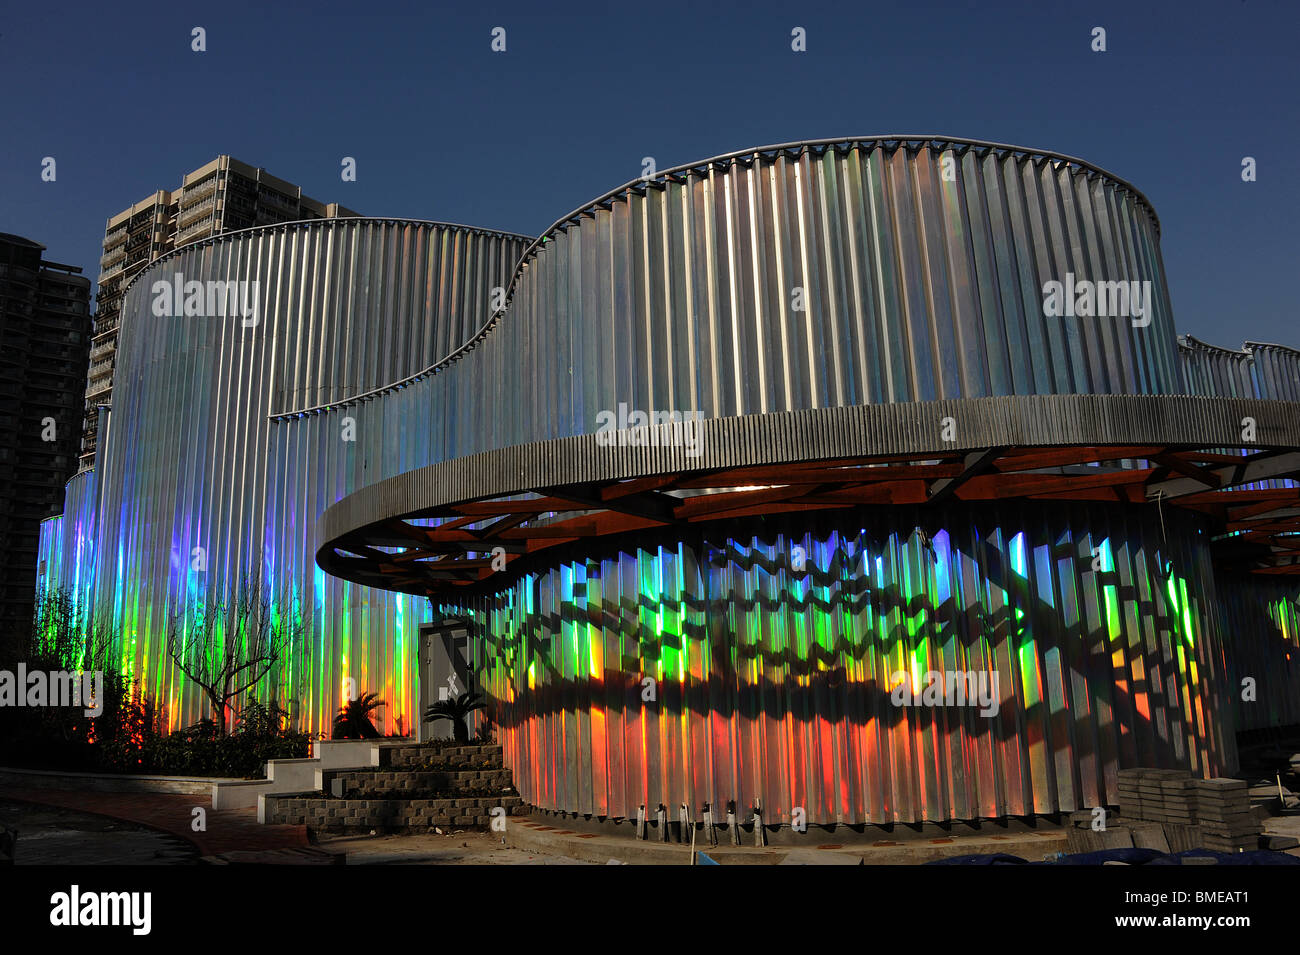 Private Enterprises Joint Pavilion in Zone E, 2010 Shanghai Expo Park, Puxi, Shanghai, China - Stock Image